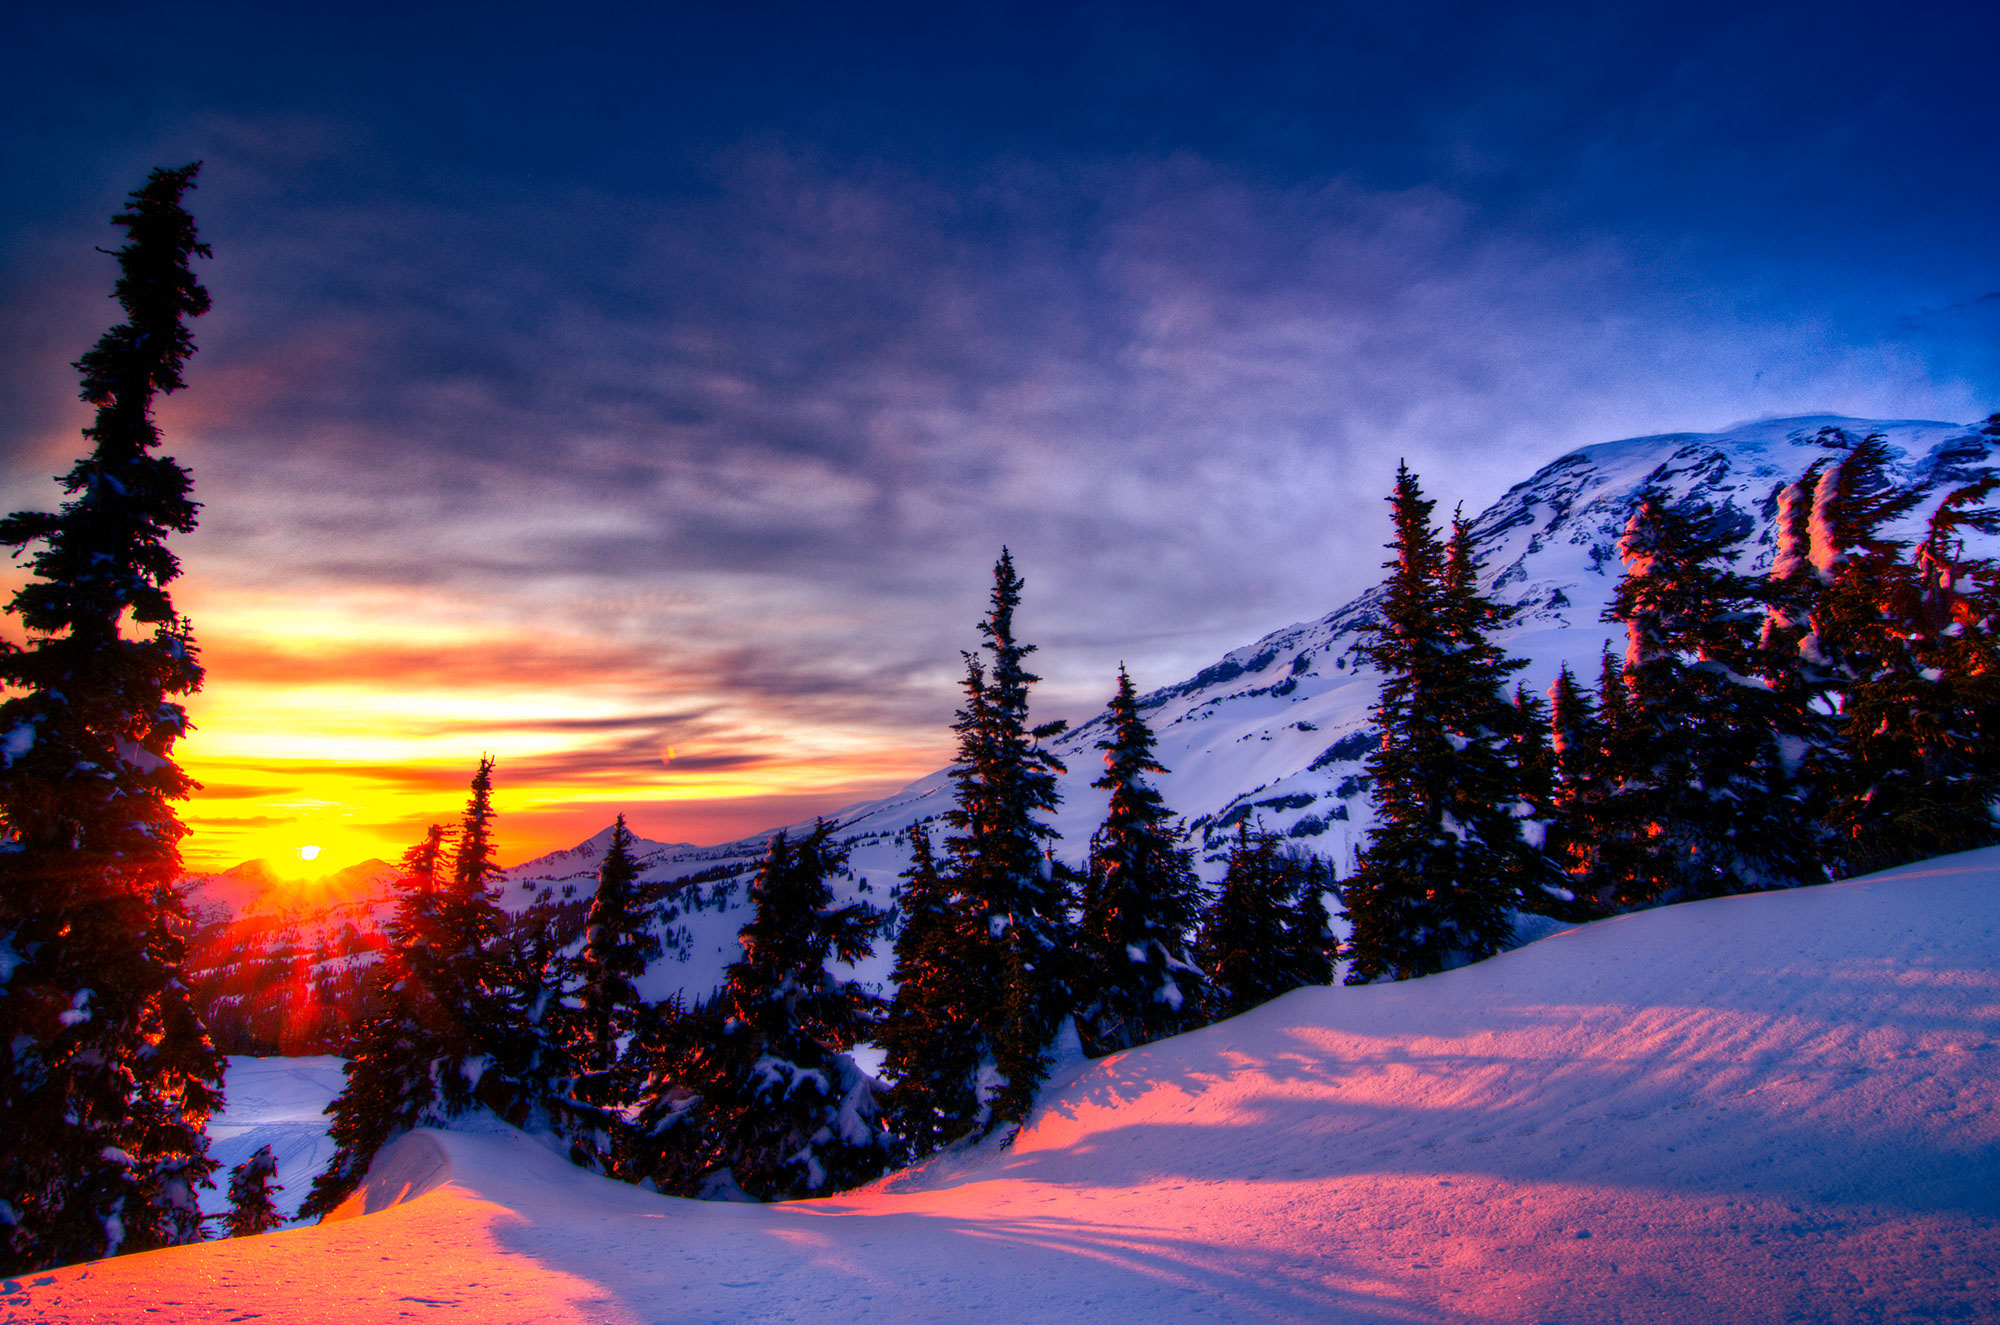 sunset winter trees mountains landscape wallpaper background 2000x1325